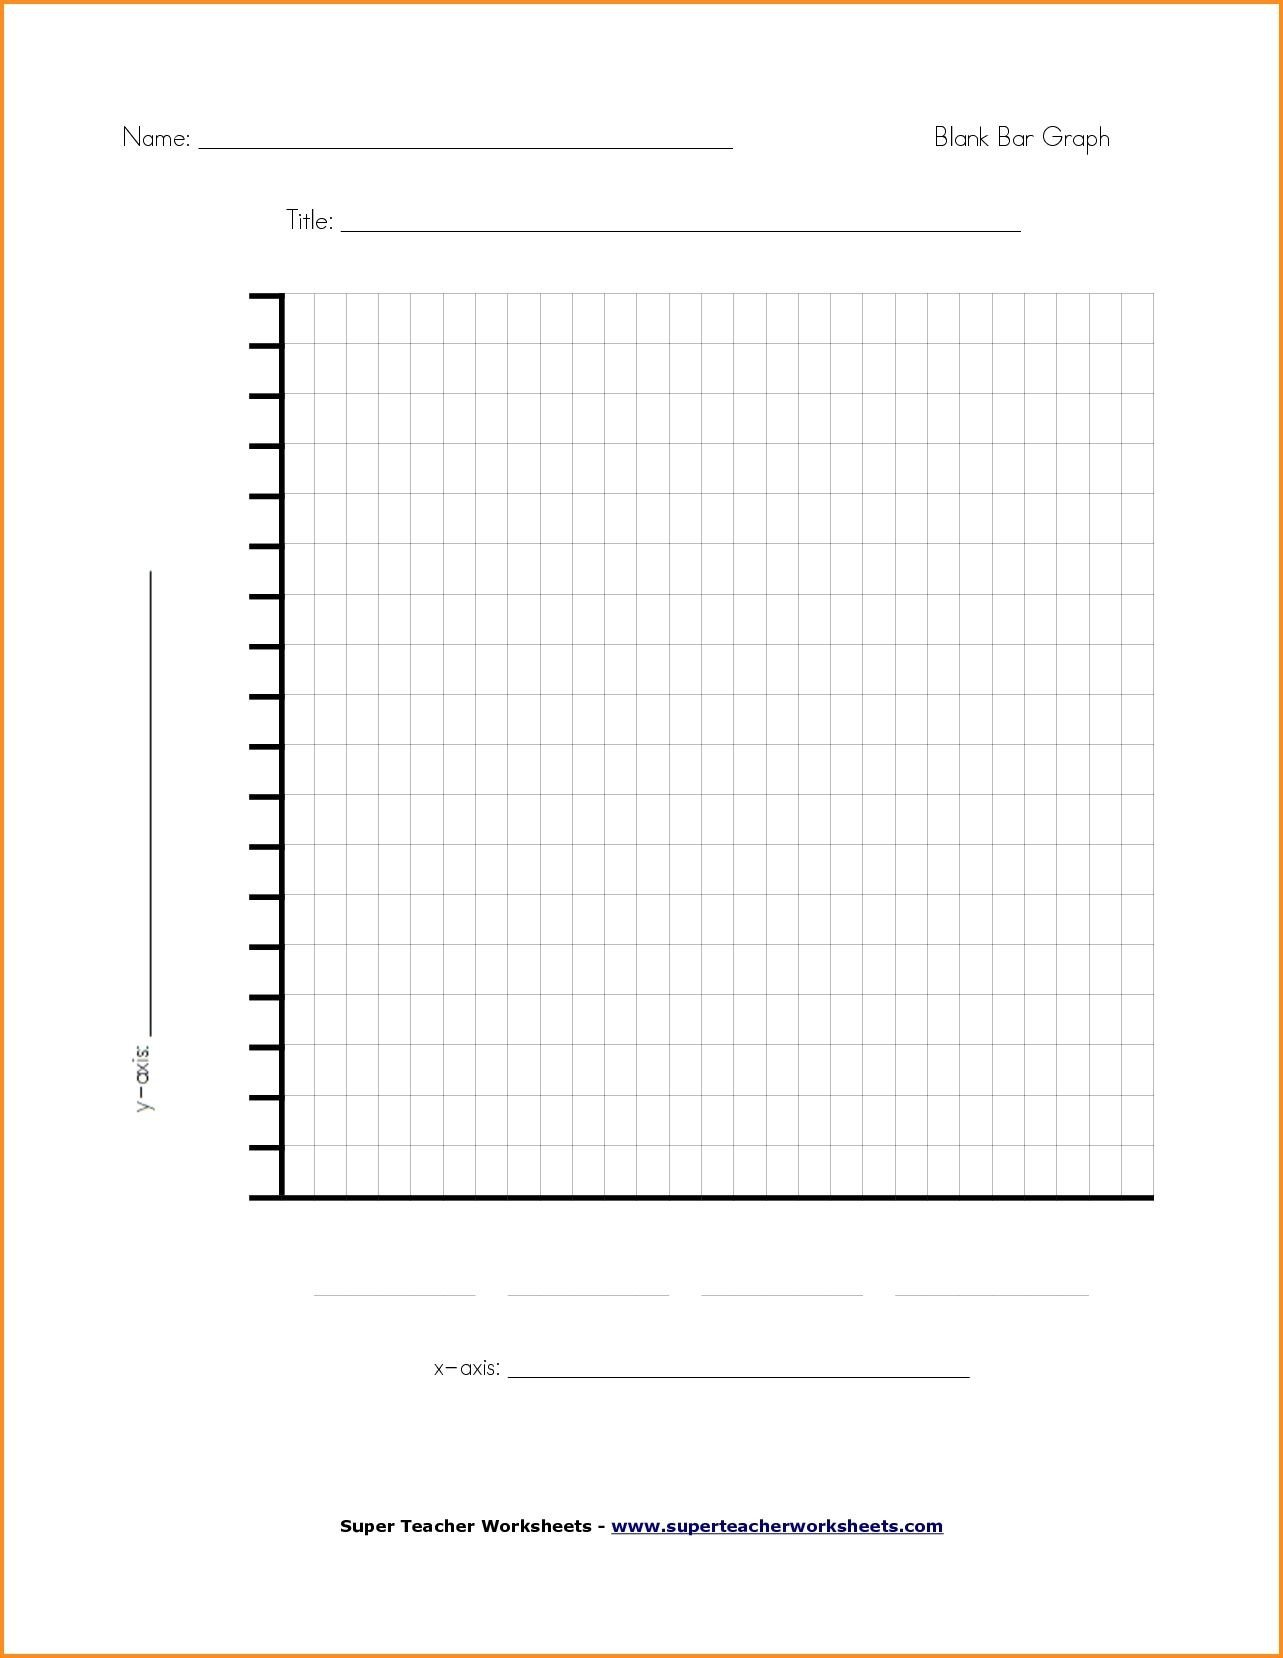 Bar Graph Worksheets Middle School Blank Line Chart Template Writings and Essays Corner